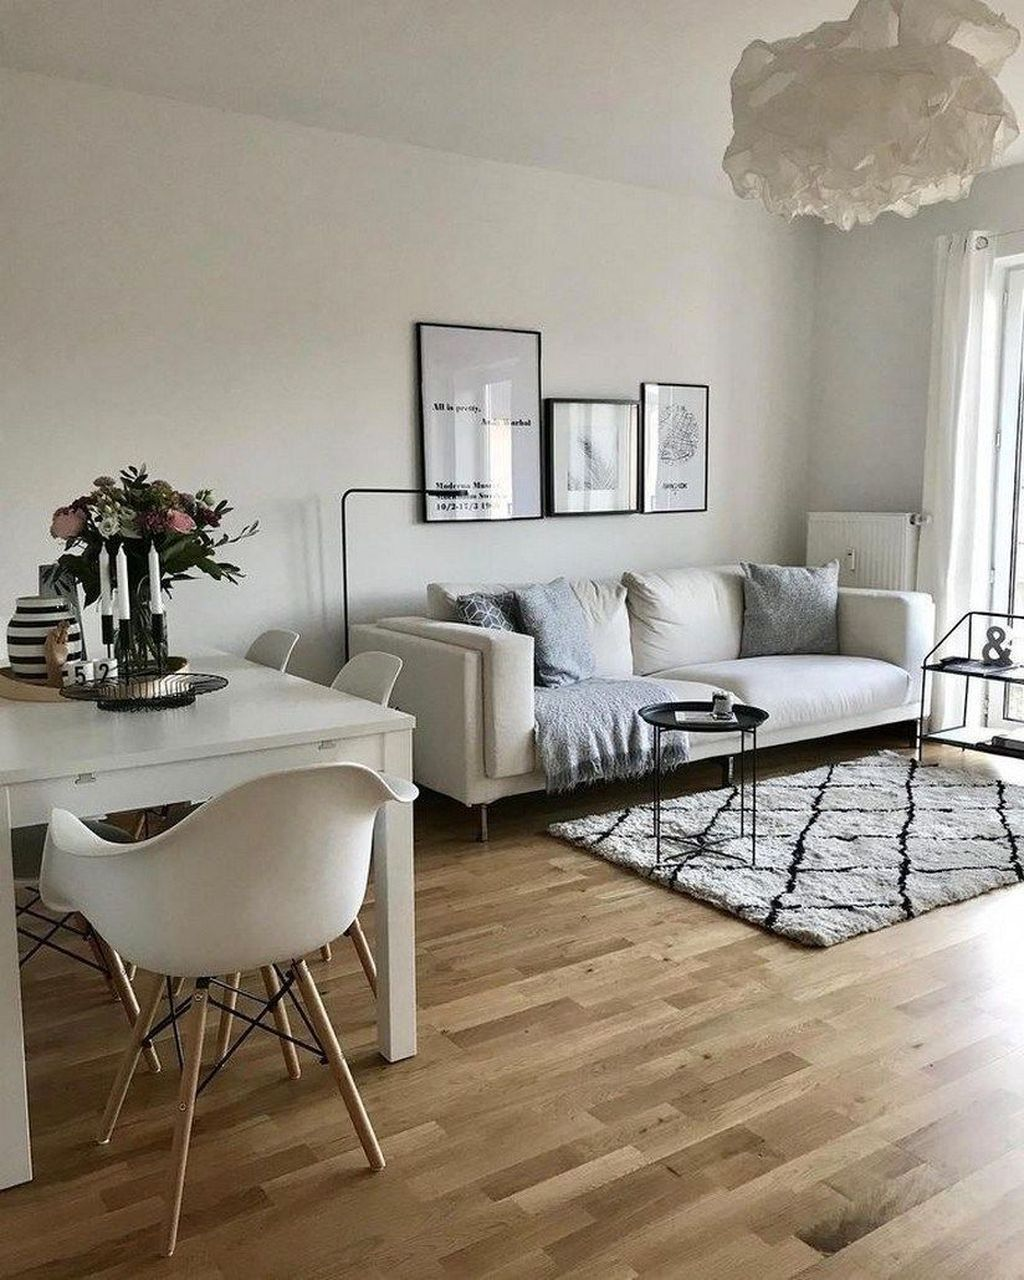 30 Awesome Modern Living Room Decor Ideas You Definitely Like In 2020 Small Apartment Decorating Living Room Small Apartment Living Room Living Room Decor Apartment #small #living #room #decor #ideas #2020